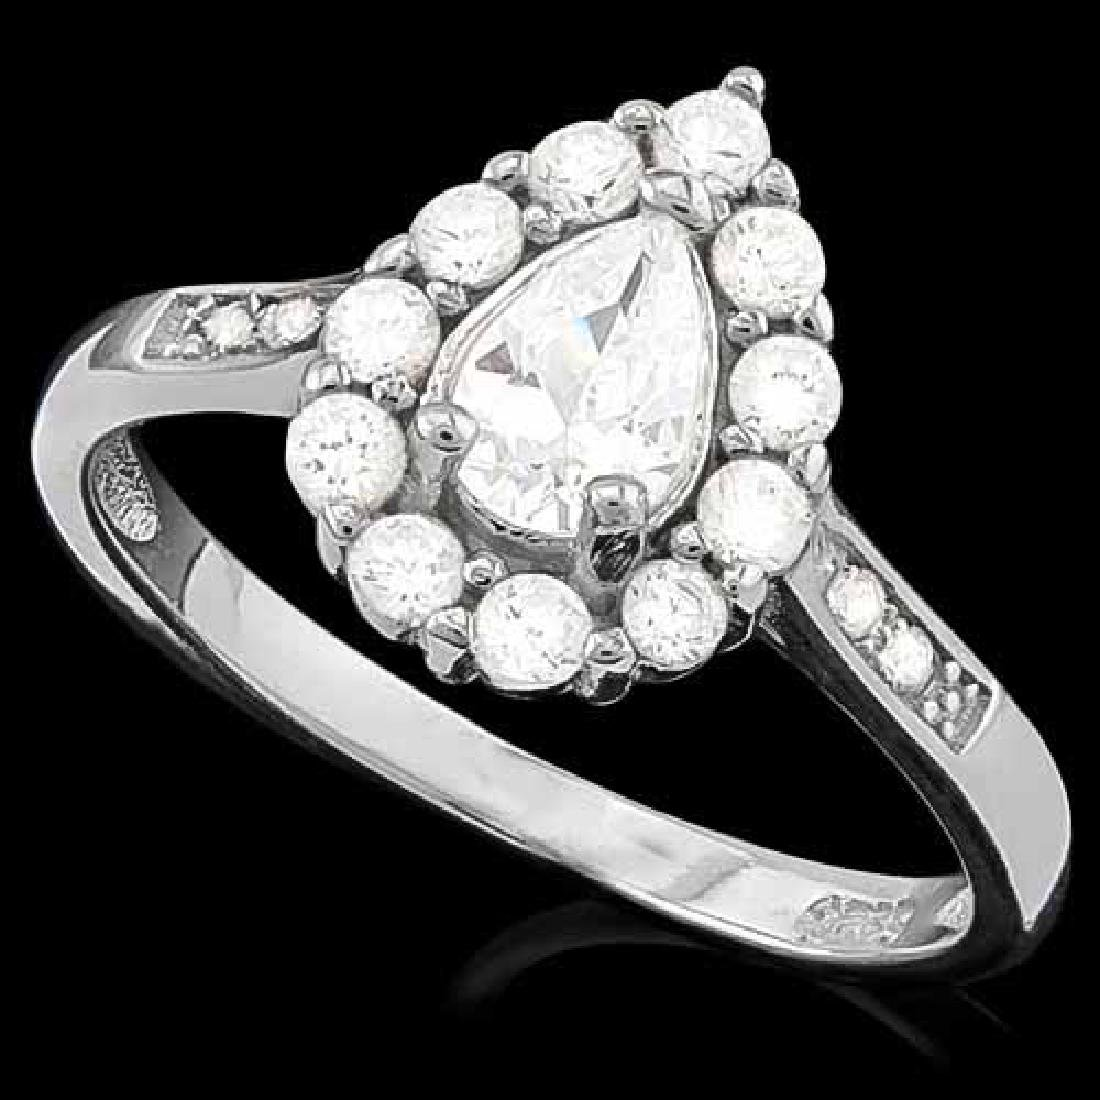 2 CARAT (17 PCS) FLAWLESS CREATED DIAMOND 925 STERLING